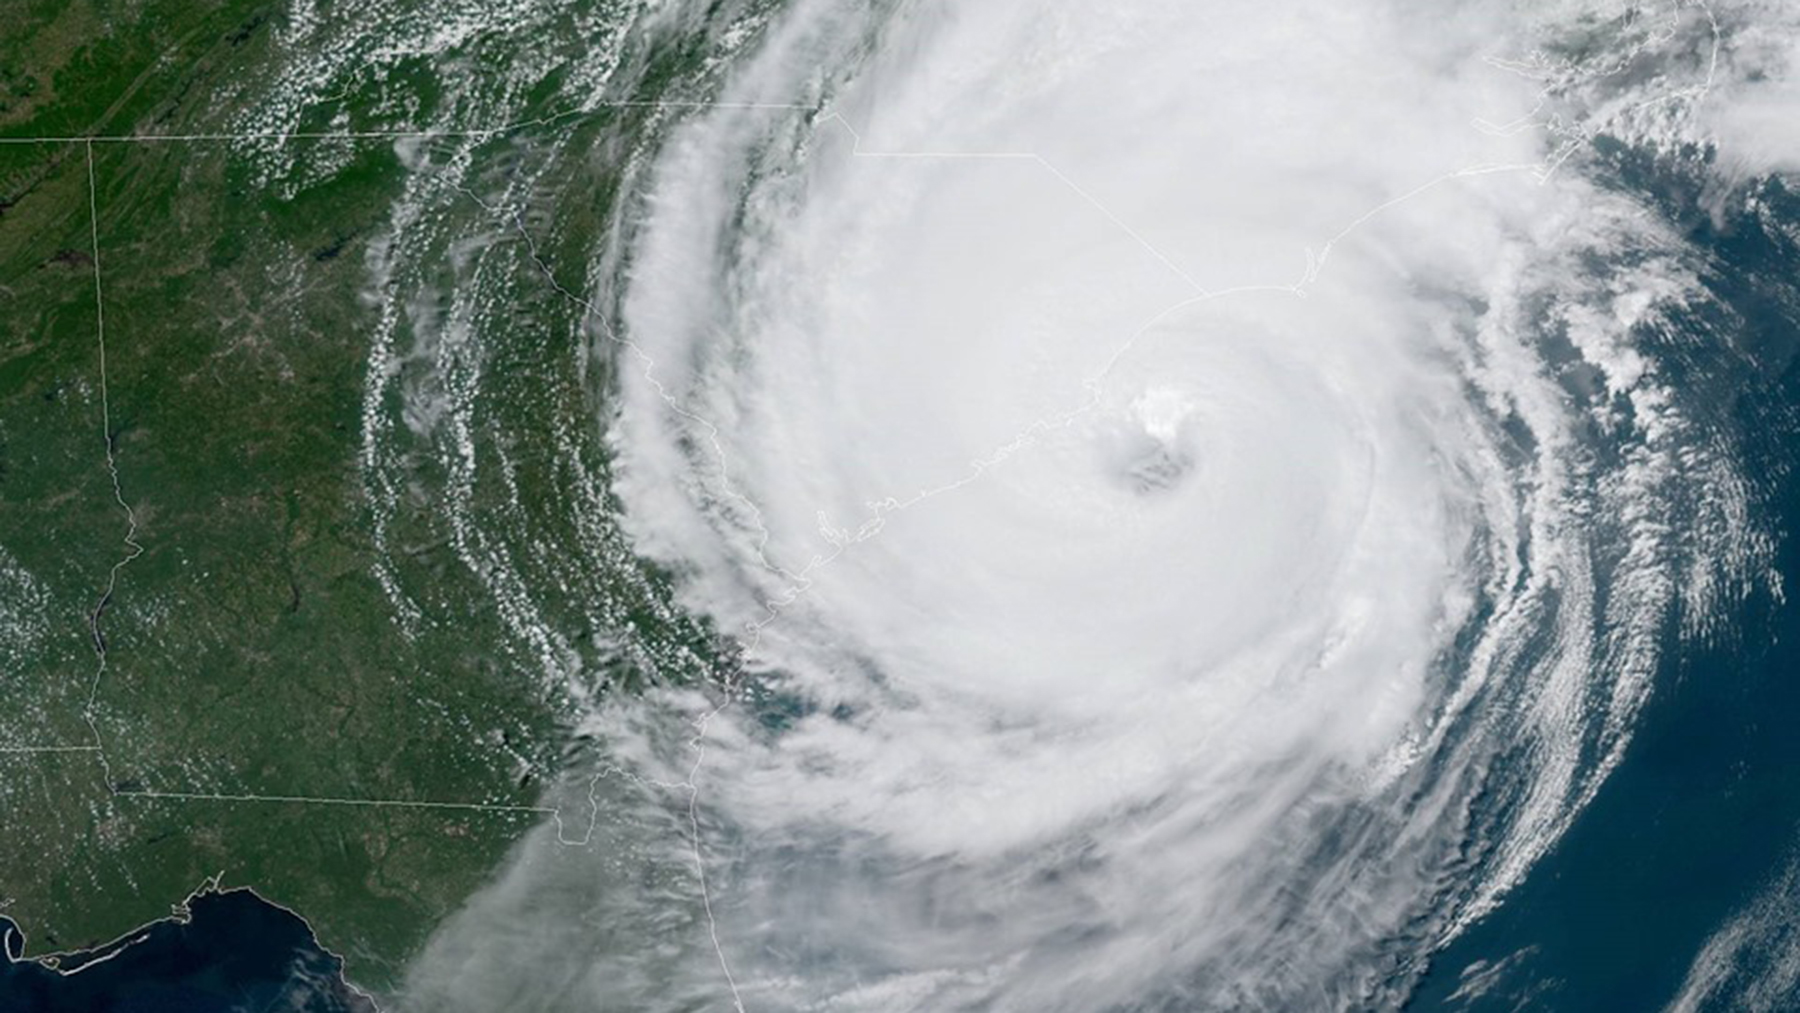 Hurricane Dorian off the coast of South Carolina, on the afternoon of September 5. (Image courtesy of the National Hurricane Center)